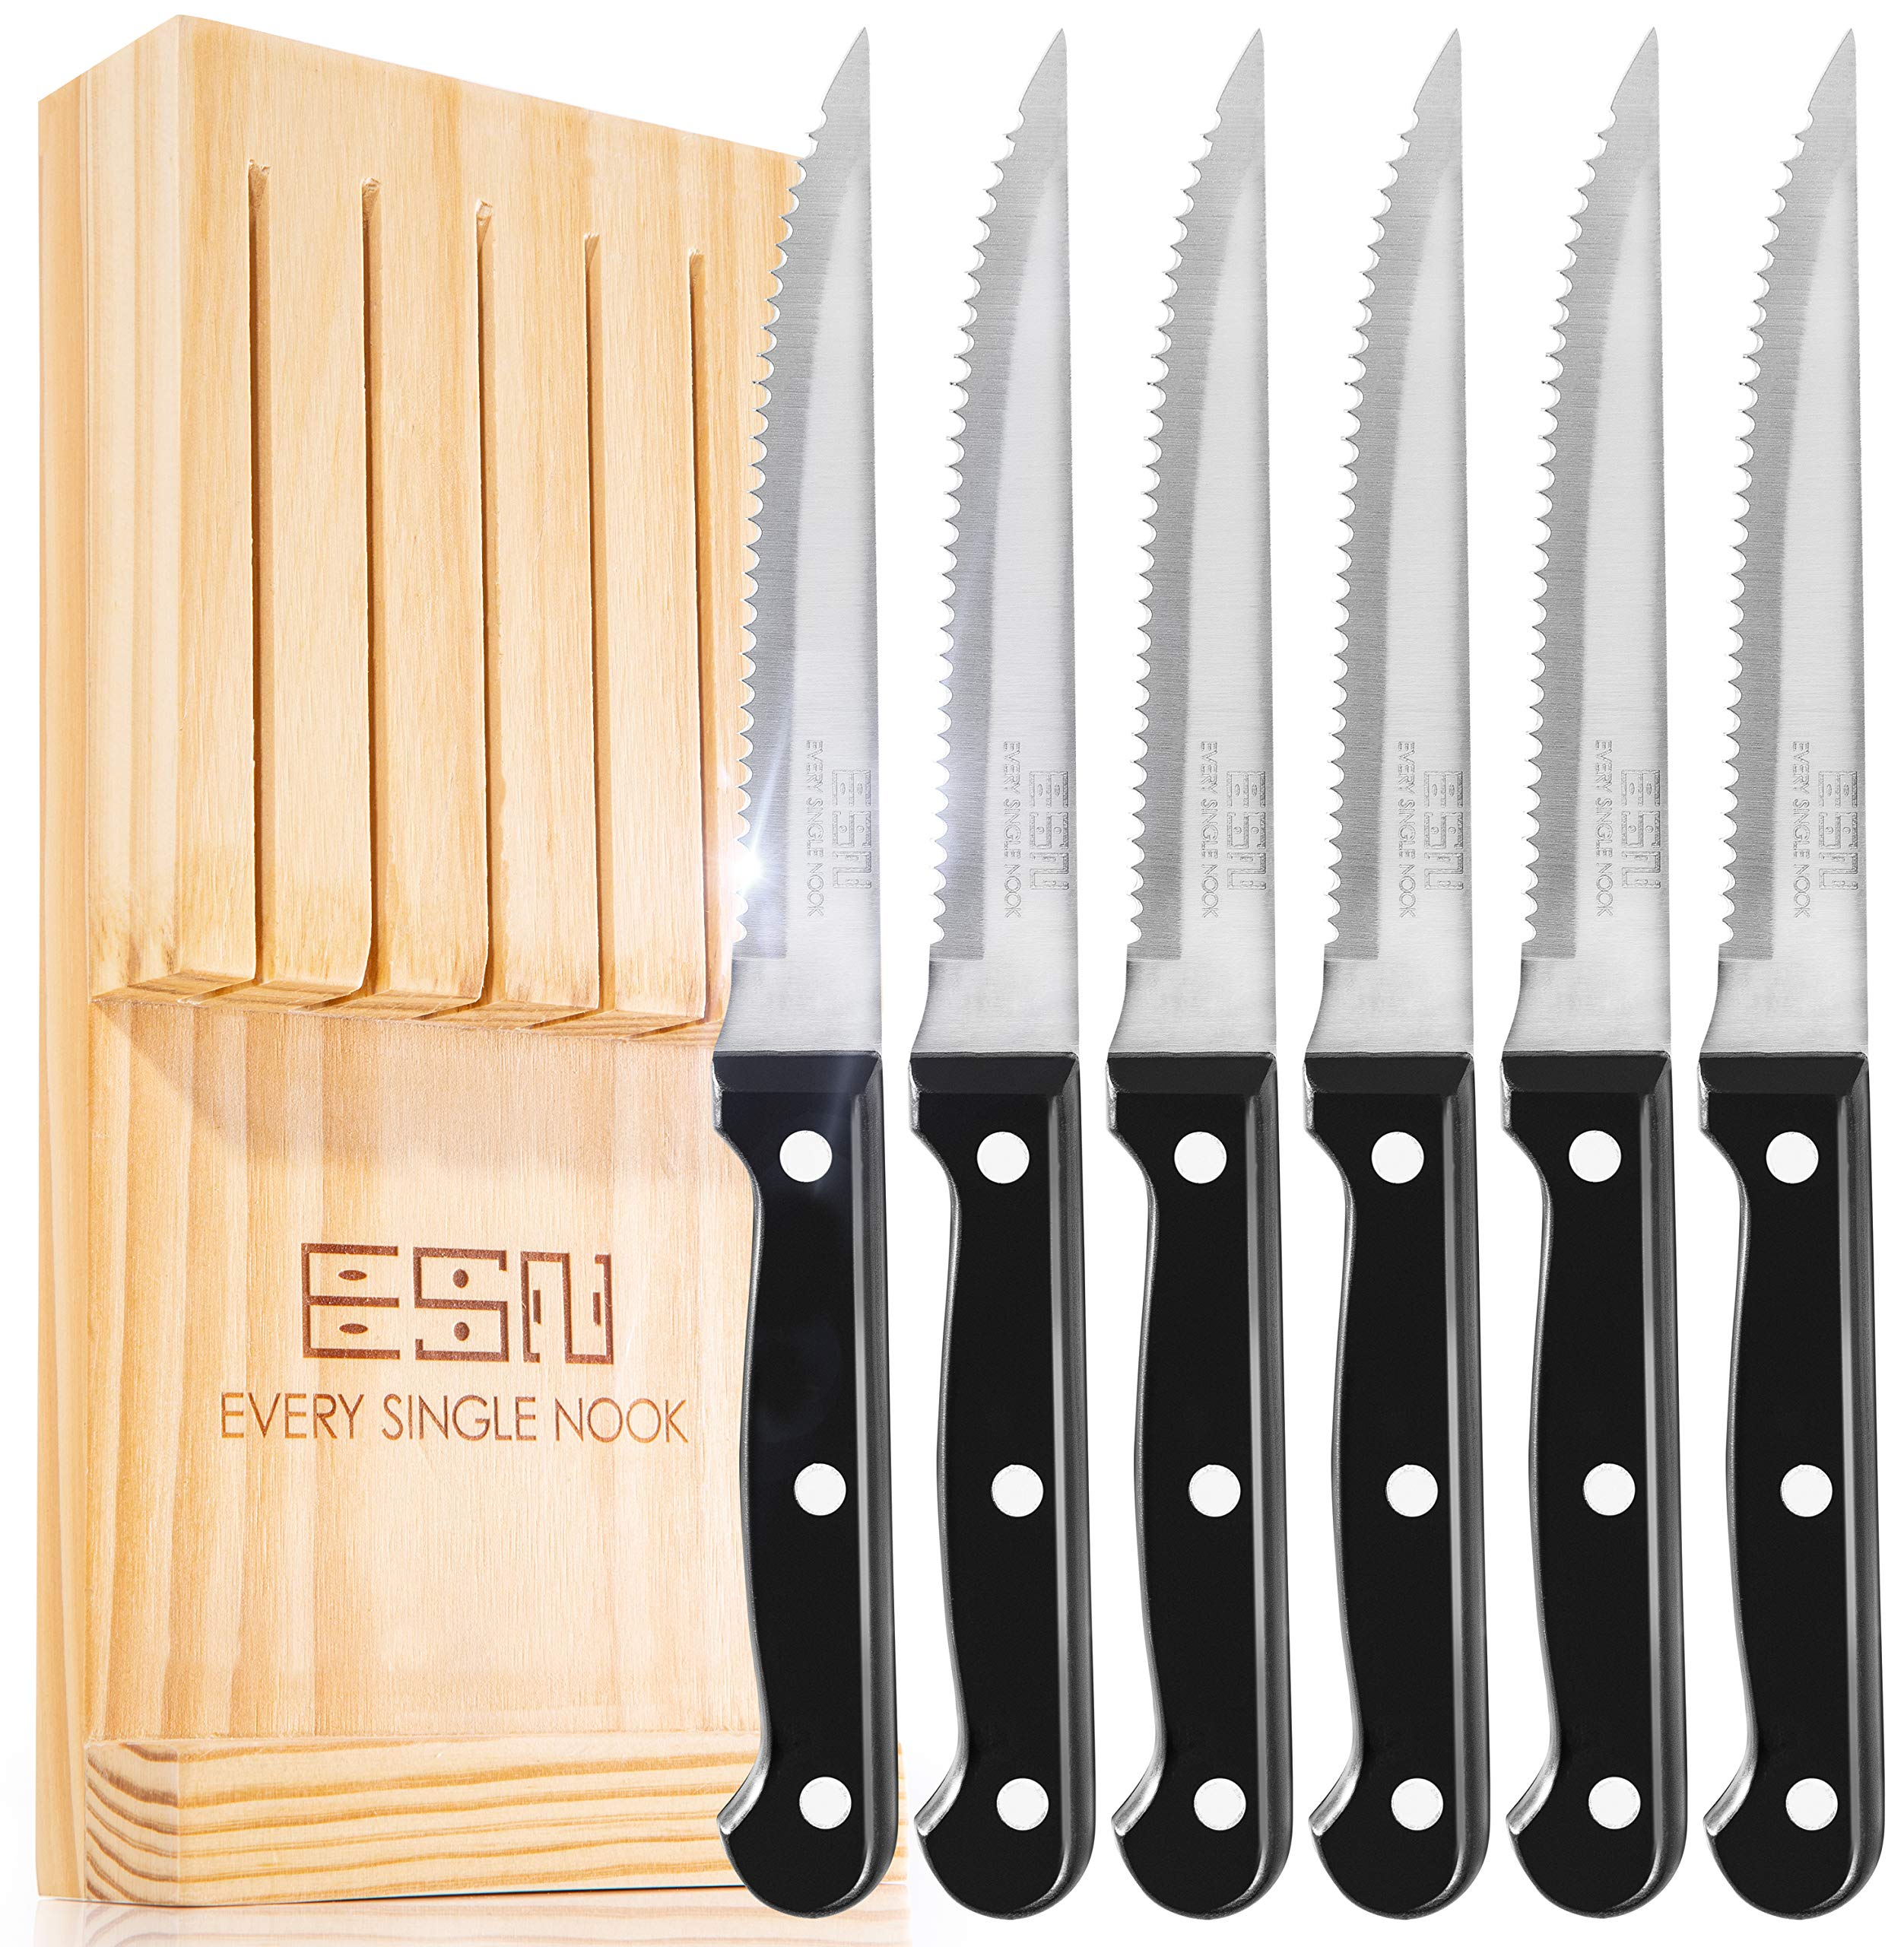 Every Single Nook Steak Knife Set of 6 Gift Box, Premium Smooth Serrated Dinner Knives for Great BBQ, Wedding and Family Dinner Gatherings, No Shapening Needed. Storage Block for Easy Storage.